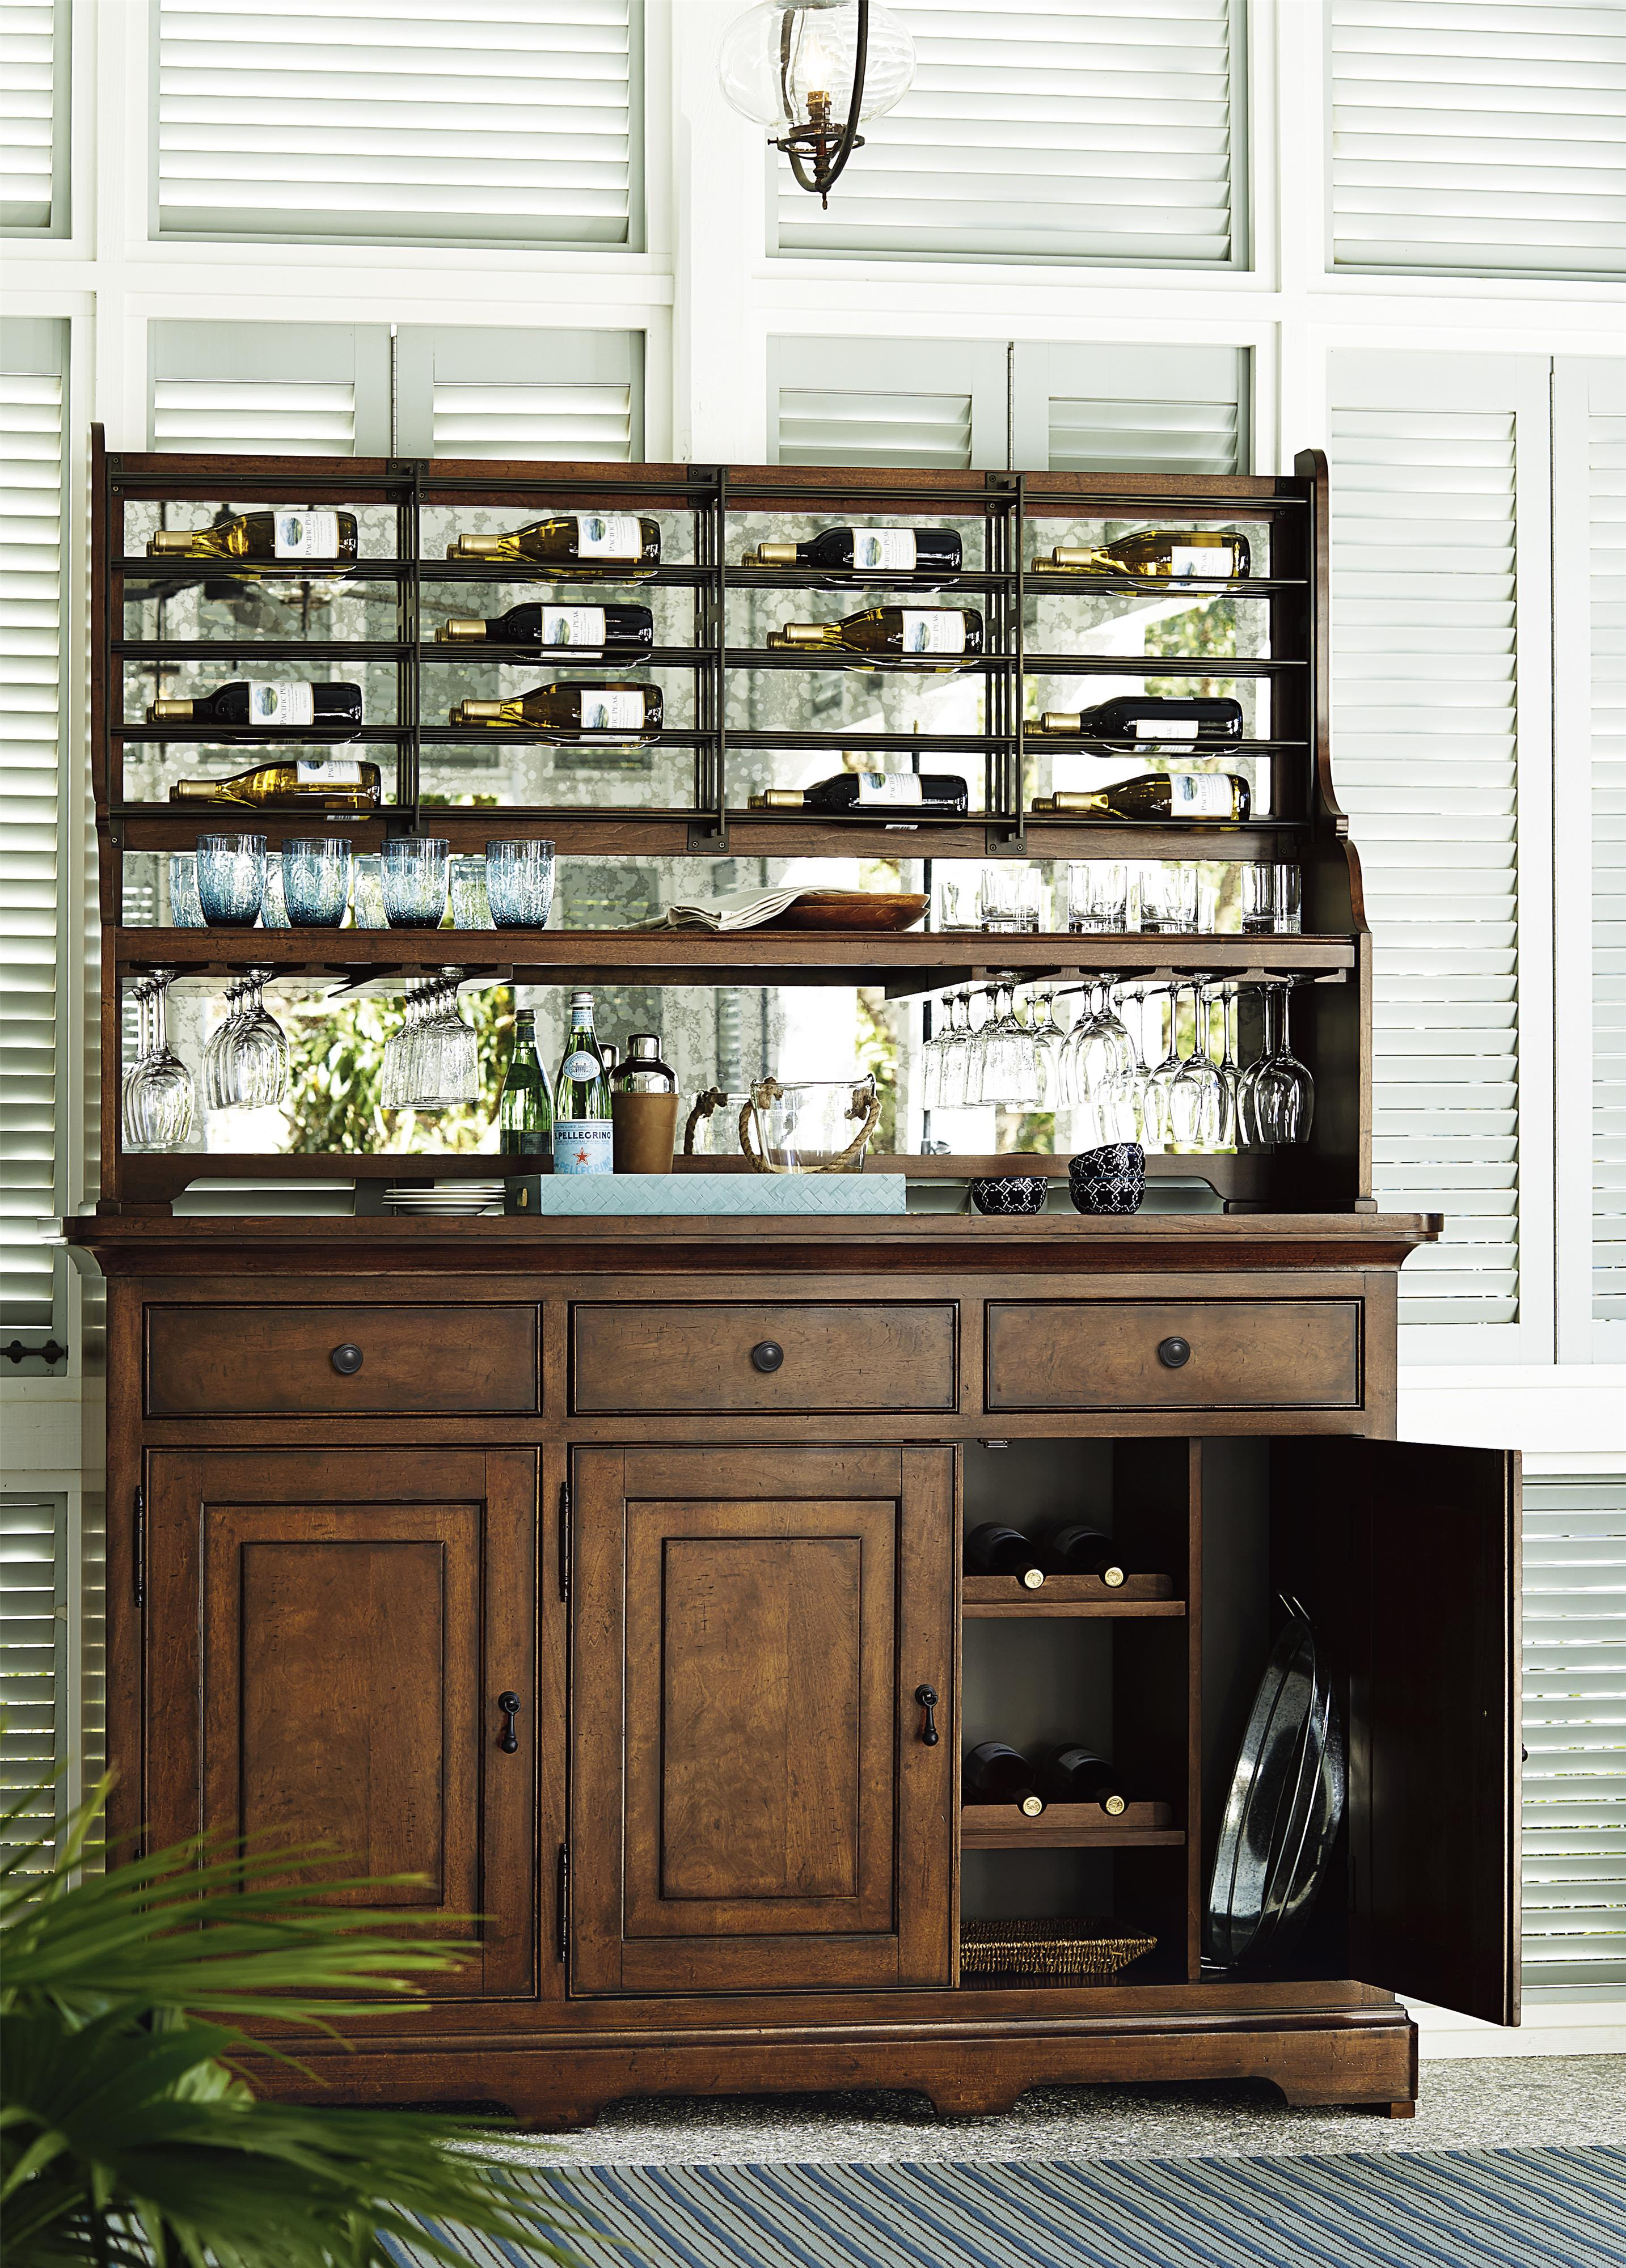 Paula Deen Kitchen Cabinets Credenza With Wine Bottle Rack And Stemware Storage By Paula Deen